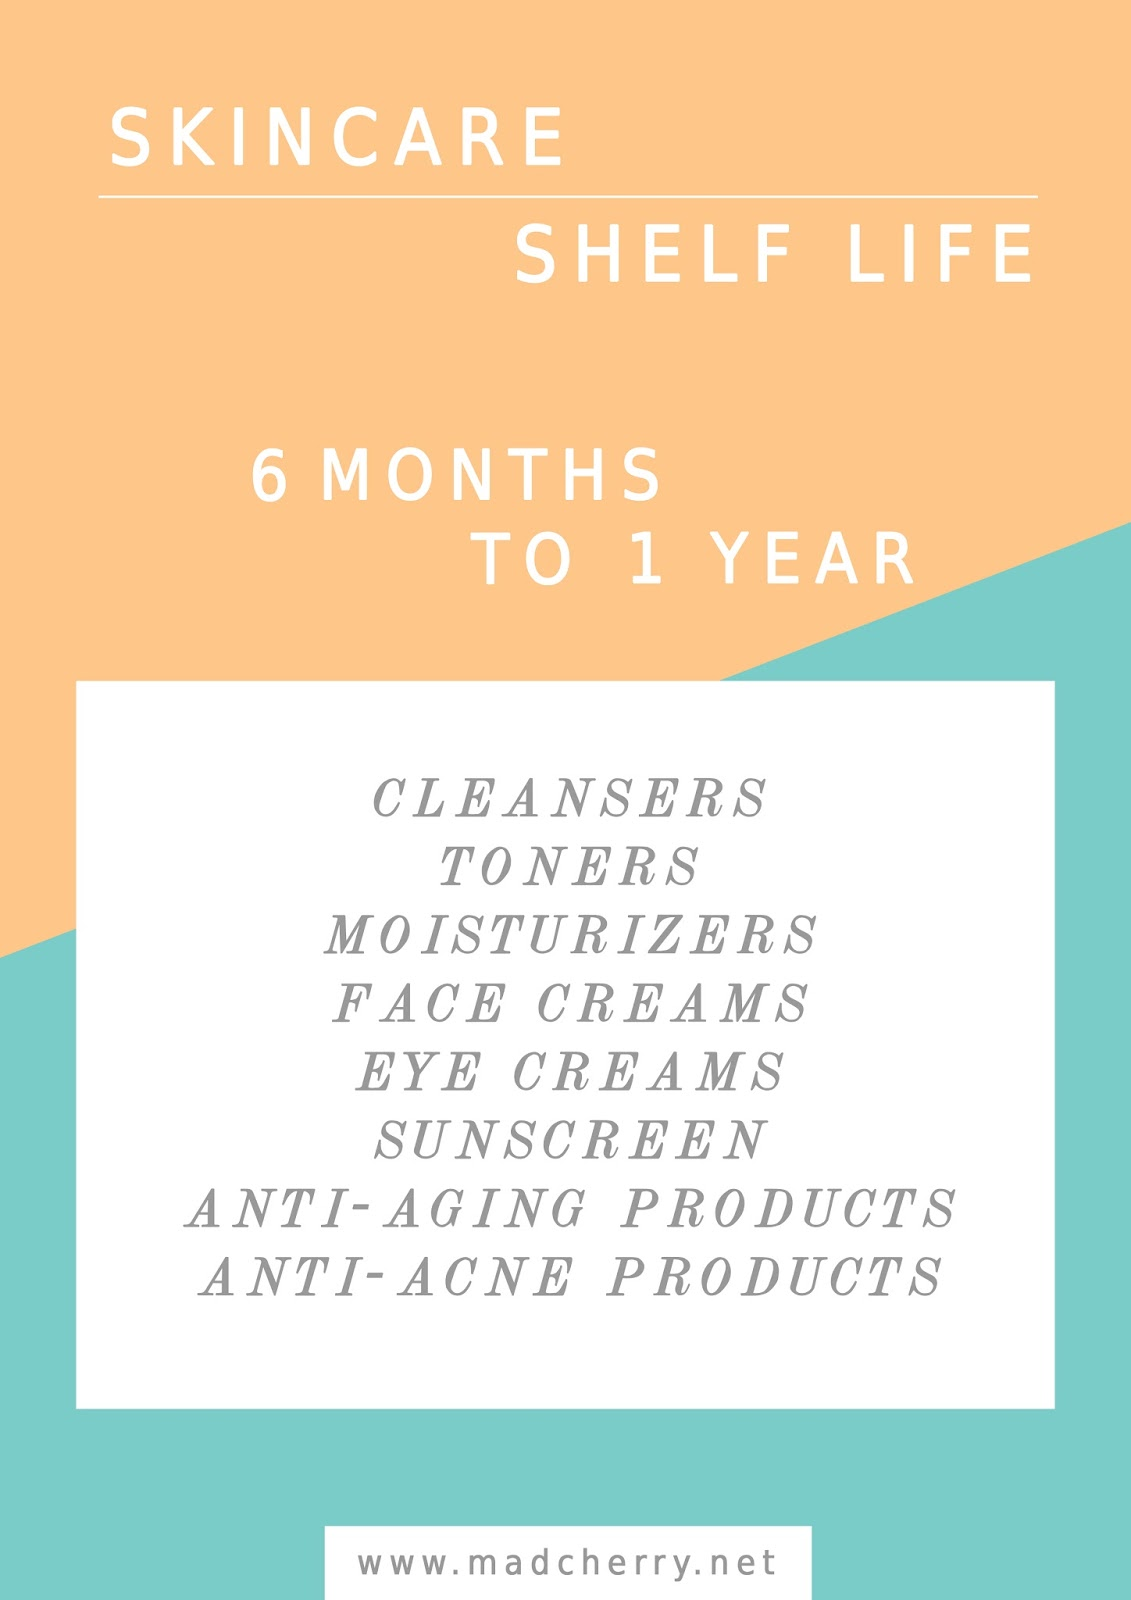 All good things come to an end... even the efficacy of beauty products. So you have to know when to throw them away and when to take advantage of them.